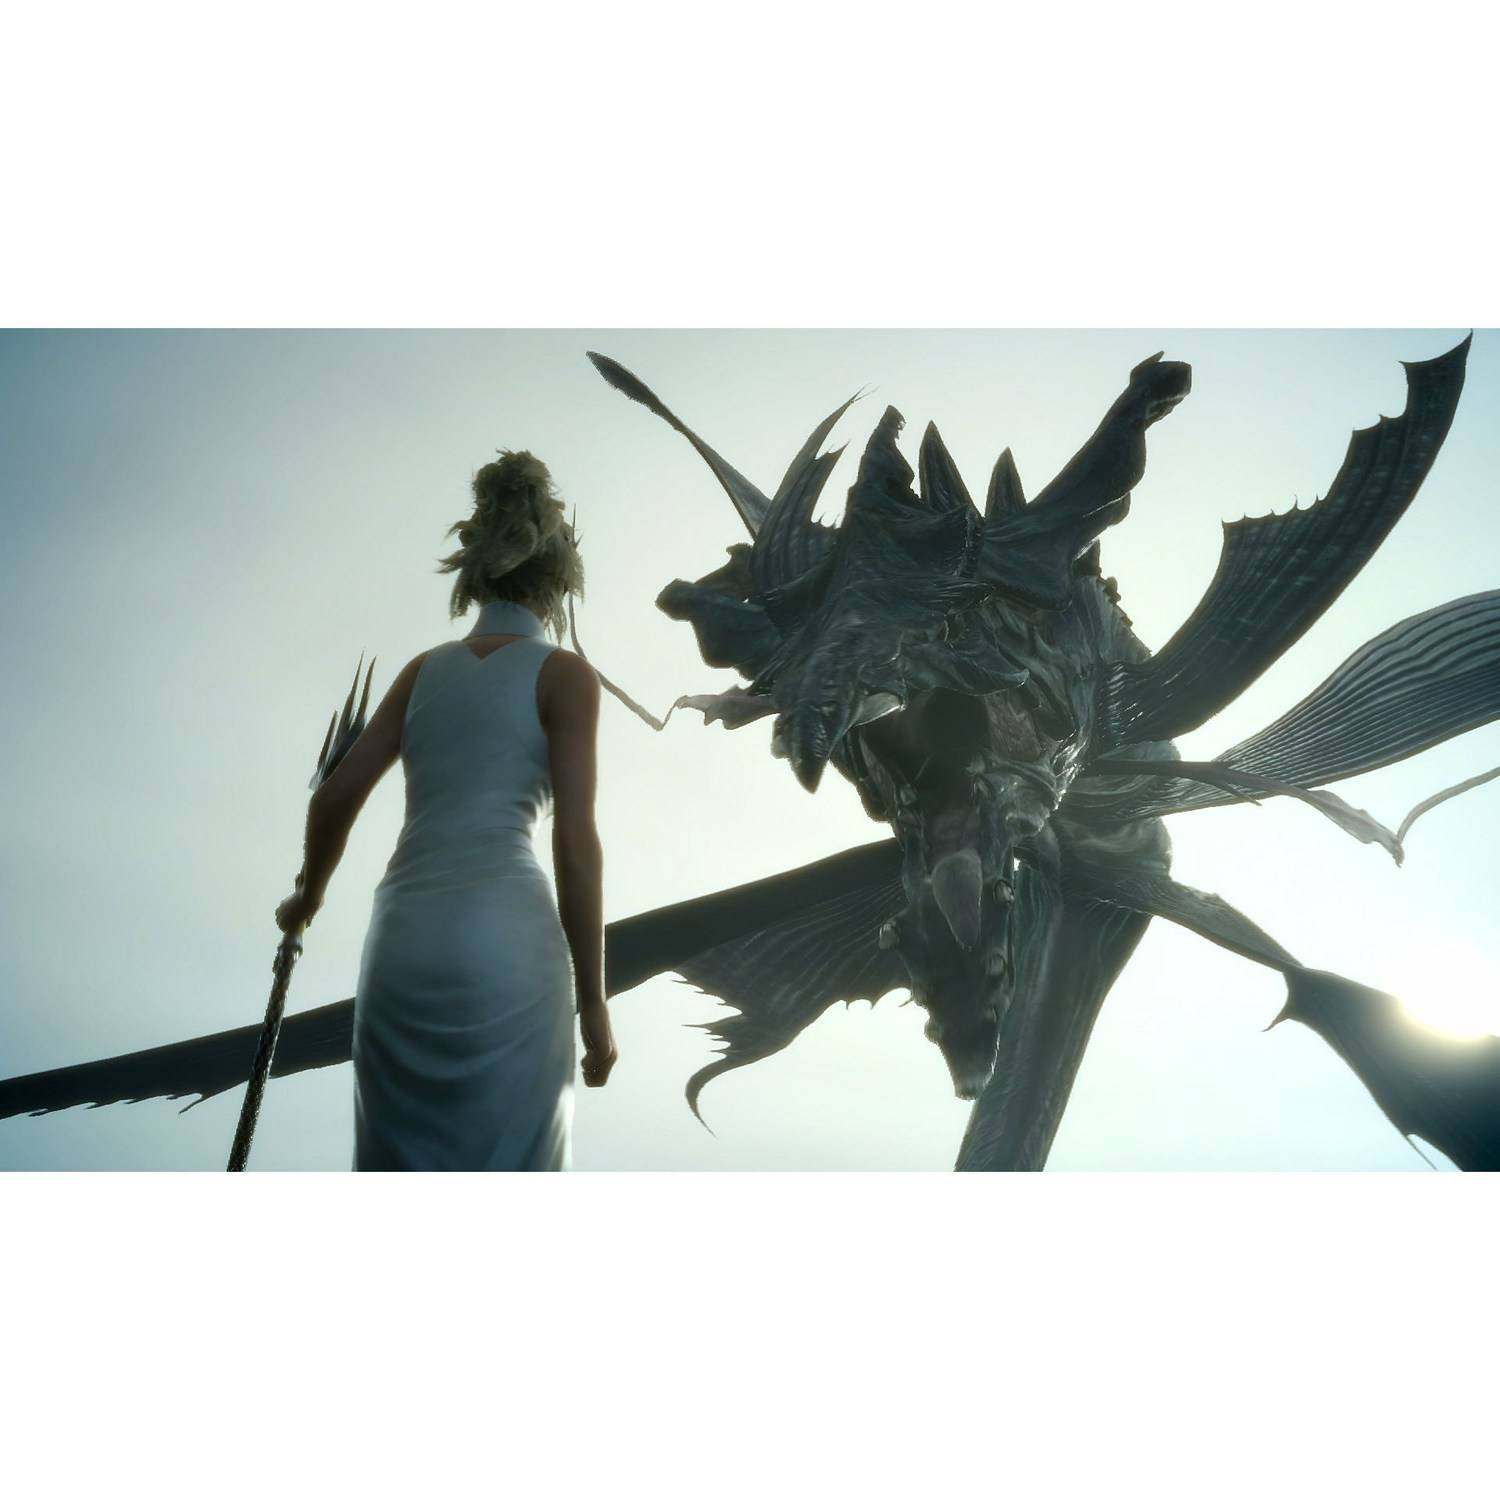 Final Fantasy XV For Xbox One Walmartcom - Cleaning invoice template free square enix online store